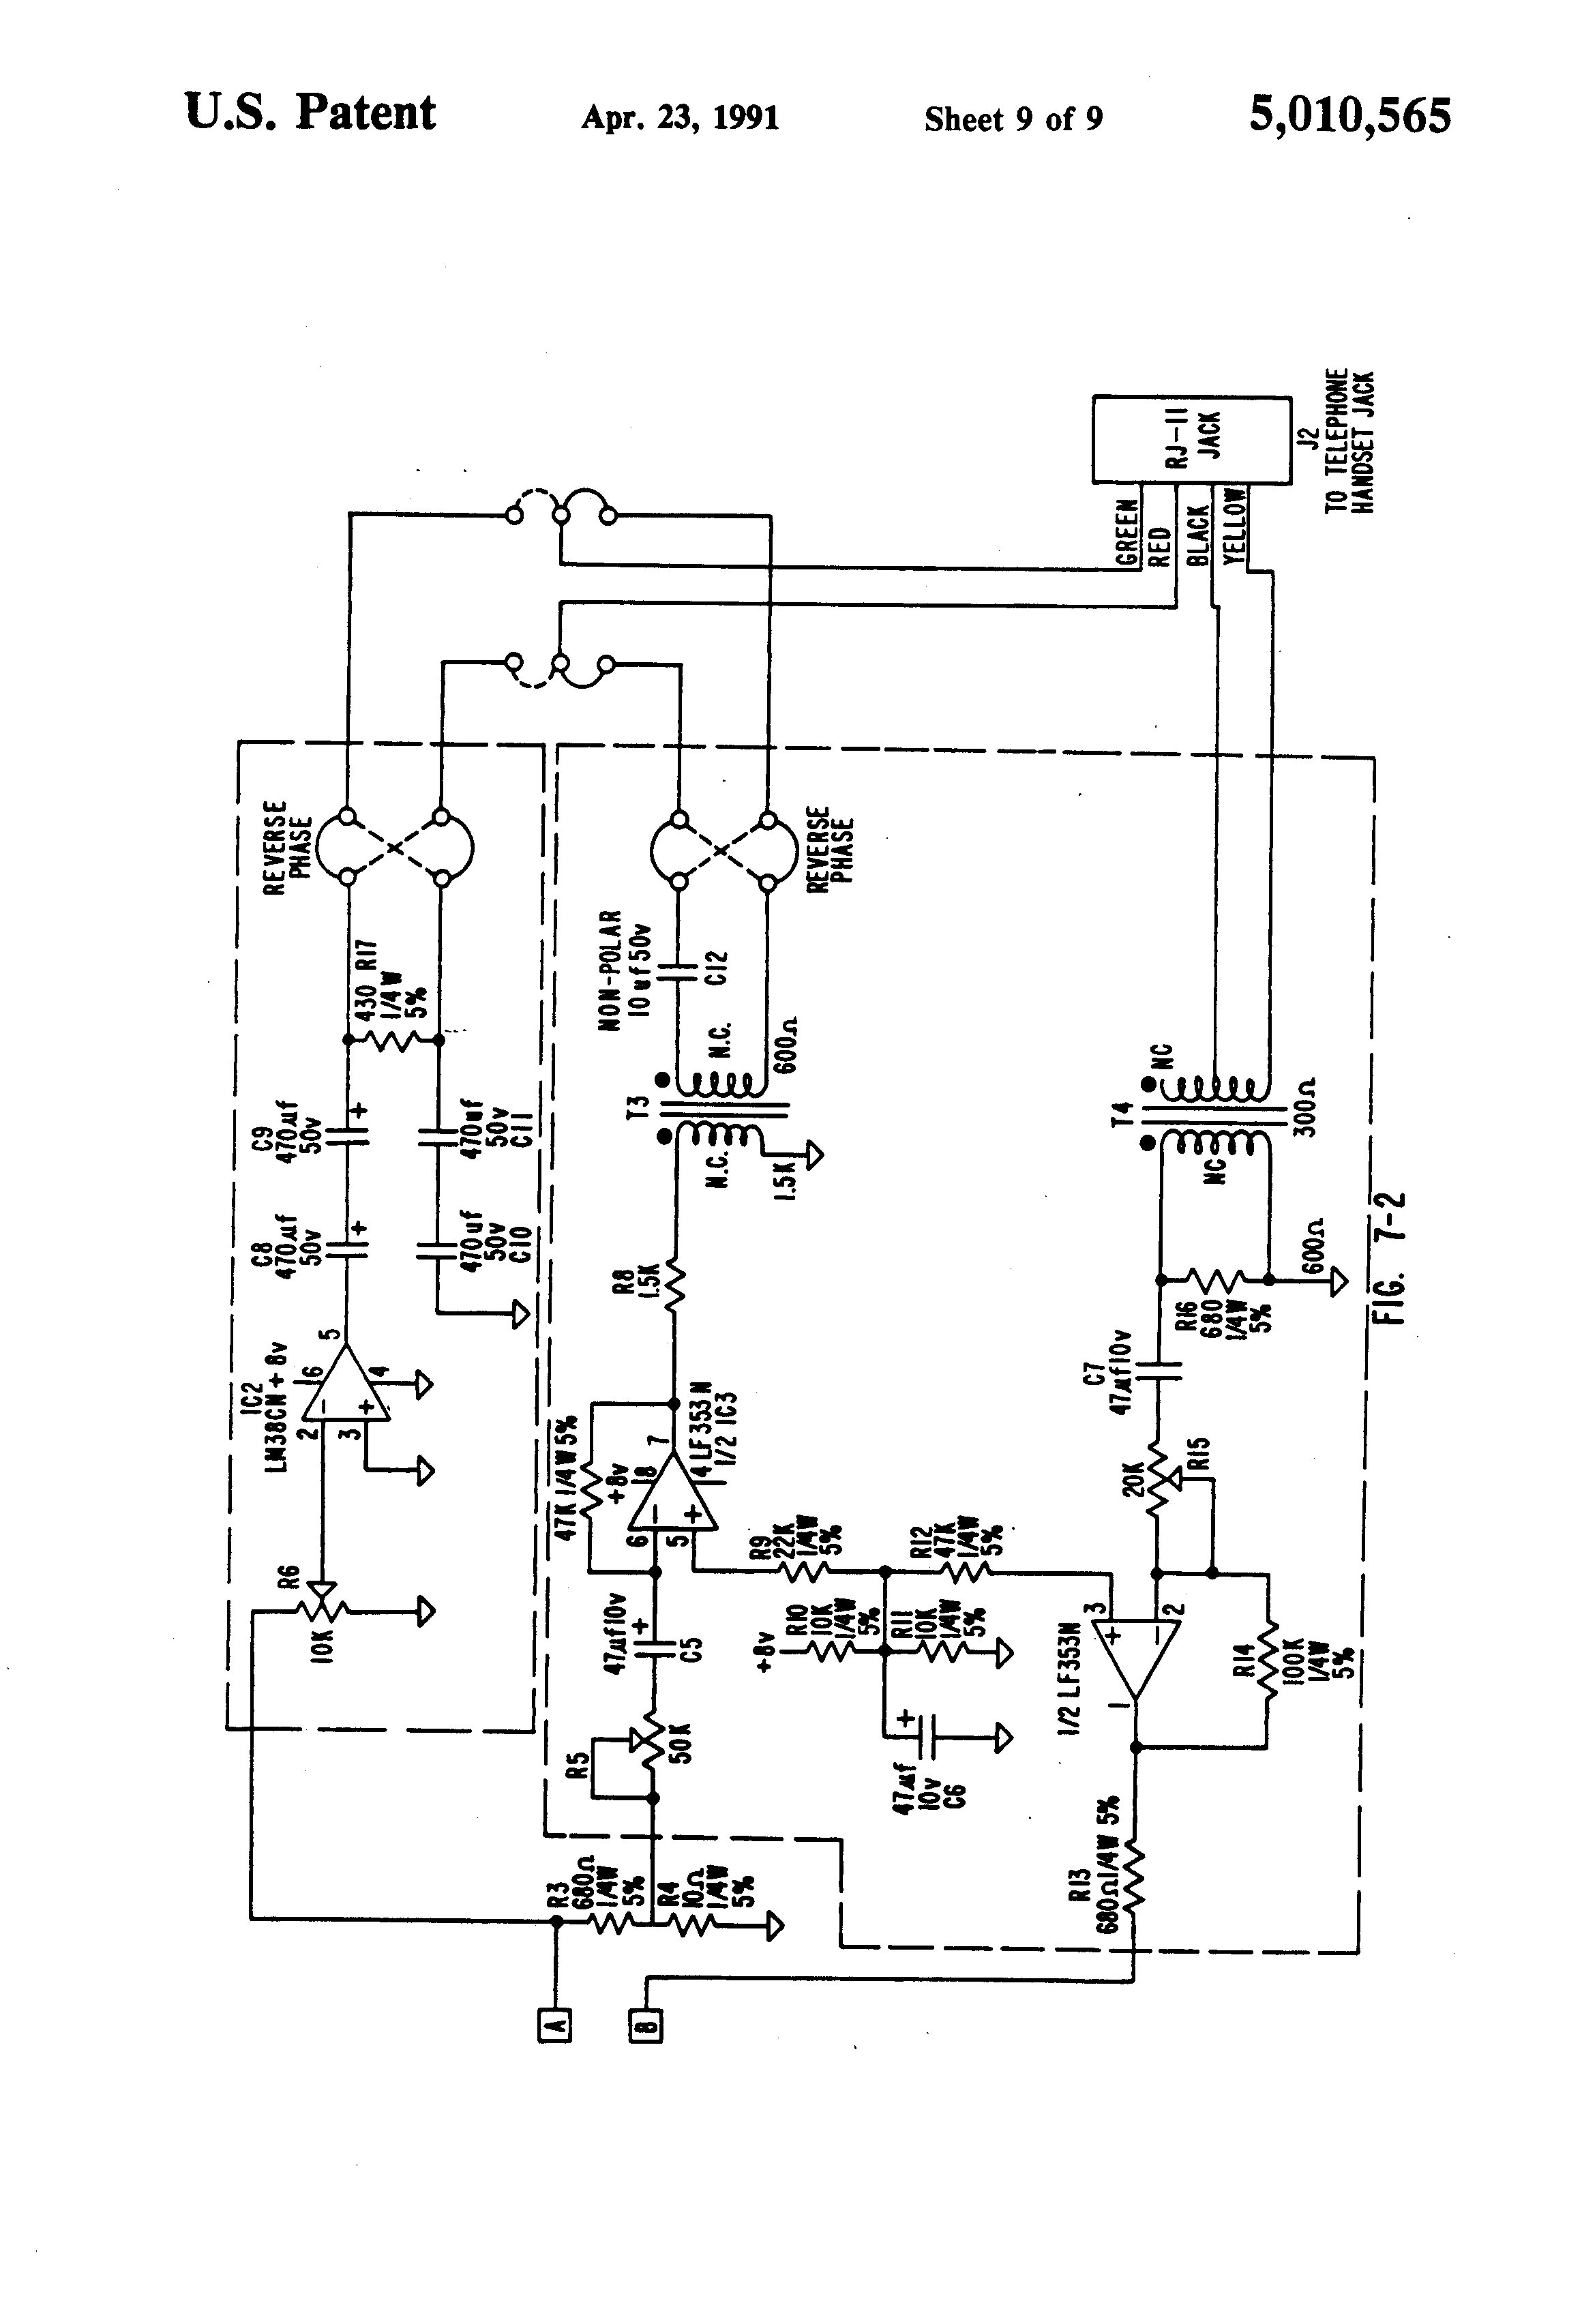 Patent Us5010565 Apparatus And Method For Adding Cordless Handset Uniden Headset Wiring Diagram Drawing